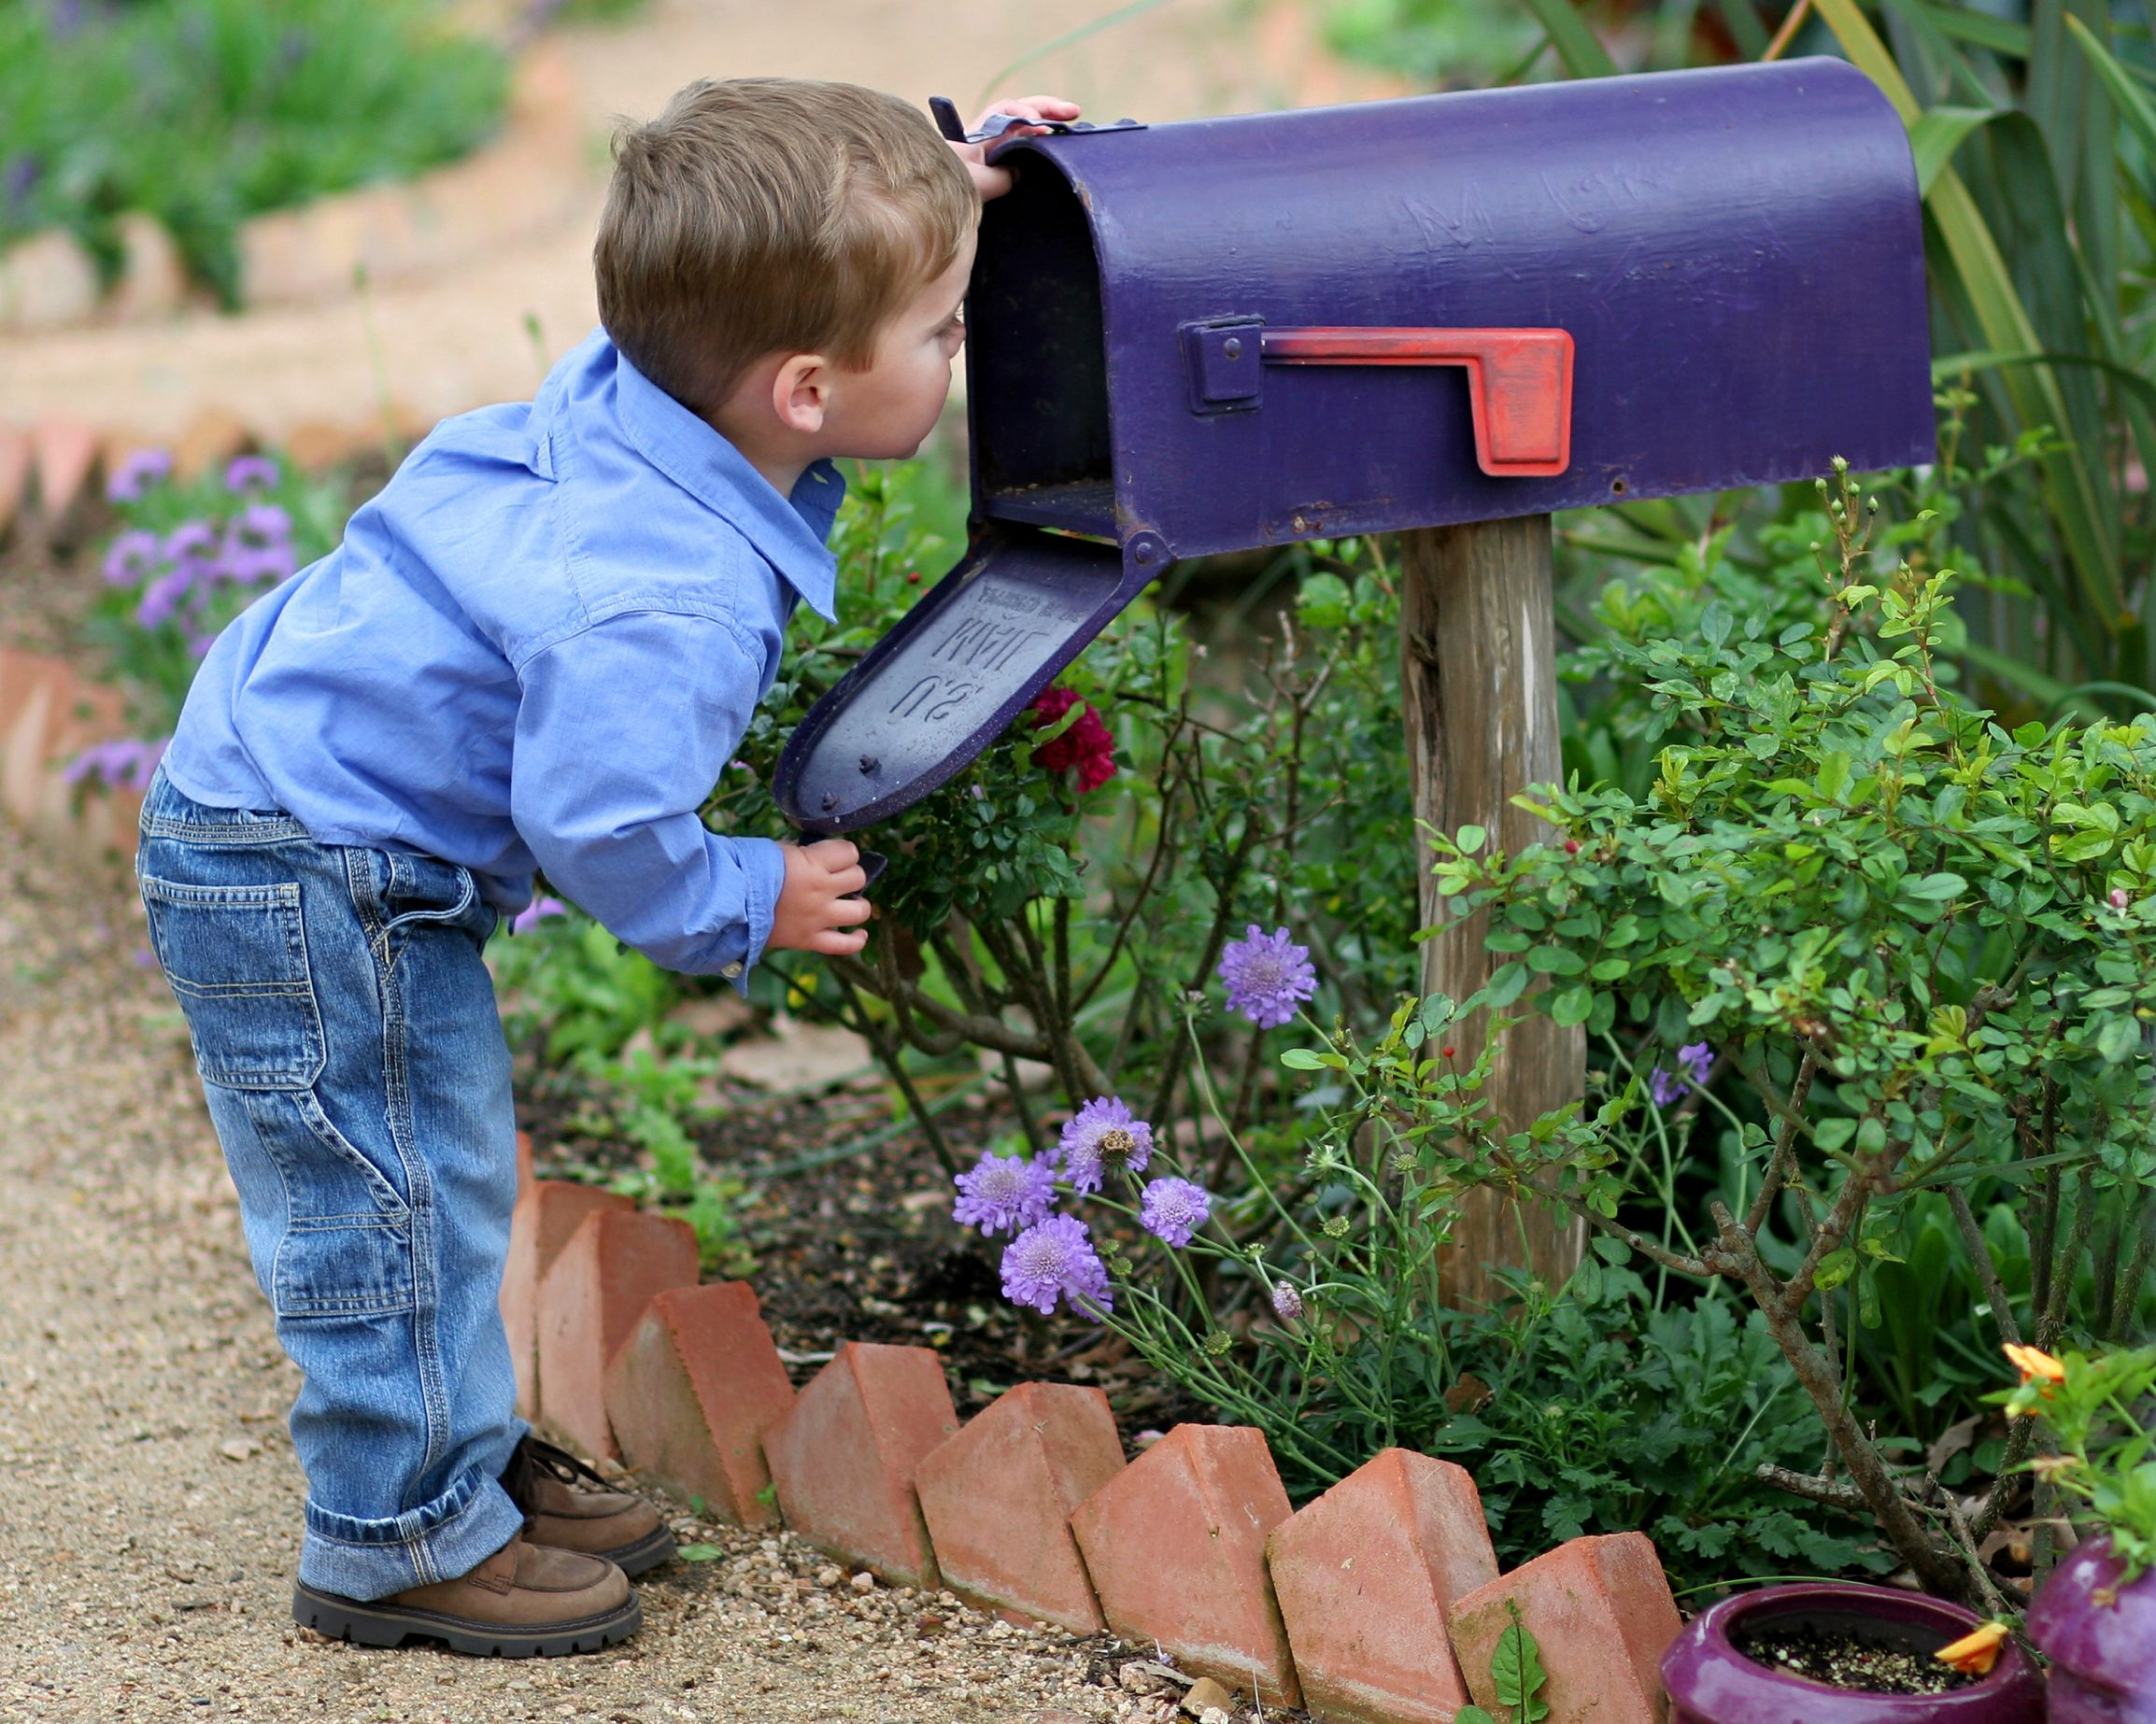 Little boy looks inside blue mailbox for a thinking of you card.